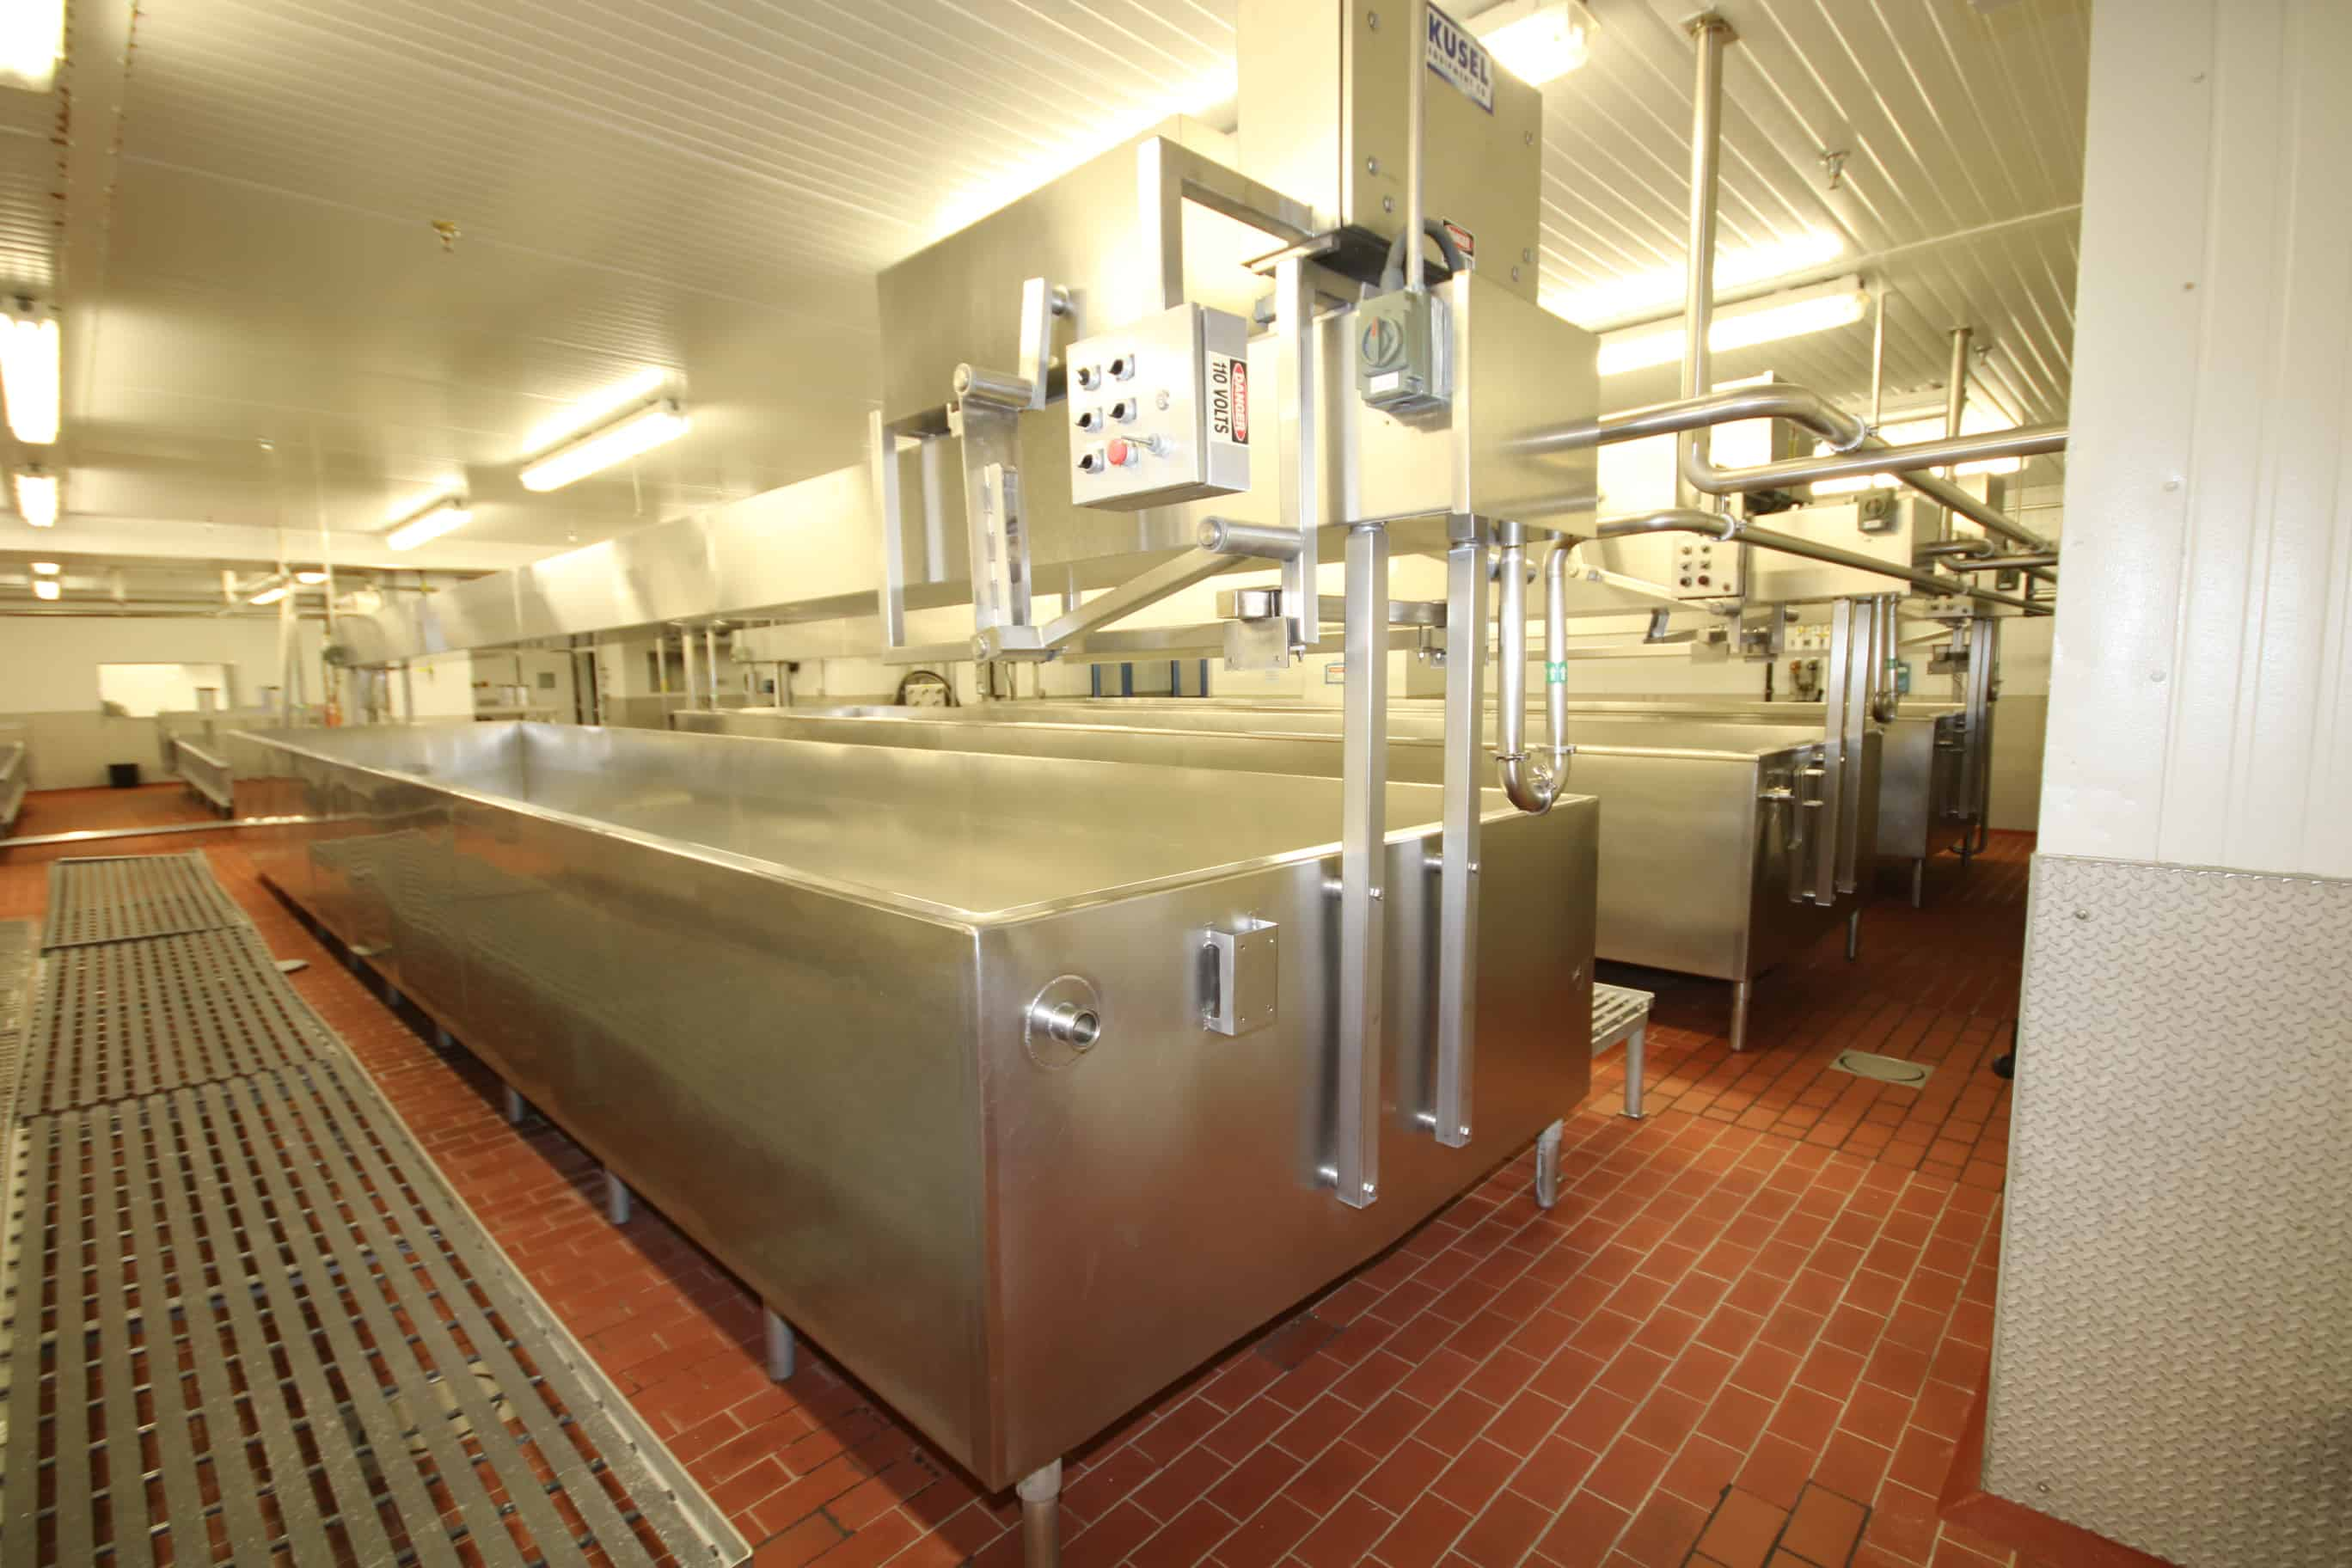 Stoelting Aprox. 30ft L x 6 ft W x 36″ H, (Aprox. 4,000 Gal.), Open Top Jacketed S/S Cheese Vat, Model VERTISTIR, S/N 83-12-167, with Overhead Bridge Agitation, Agitators Blades, Valves & Controls, (#4)